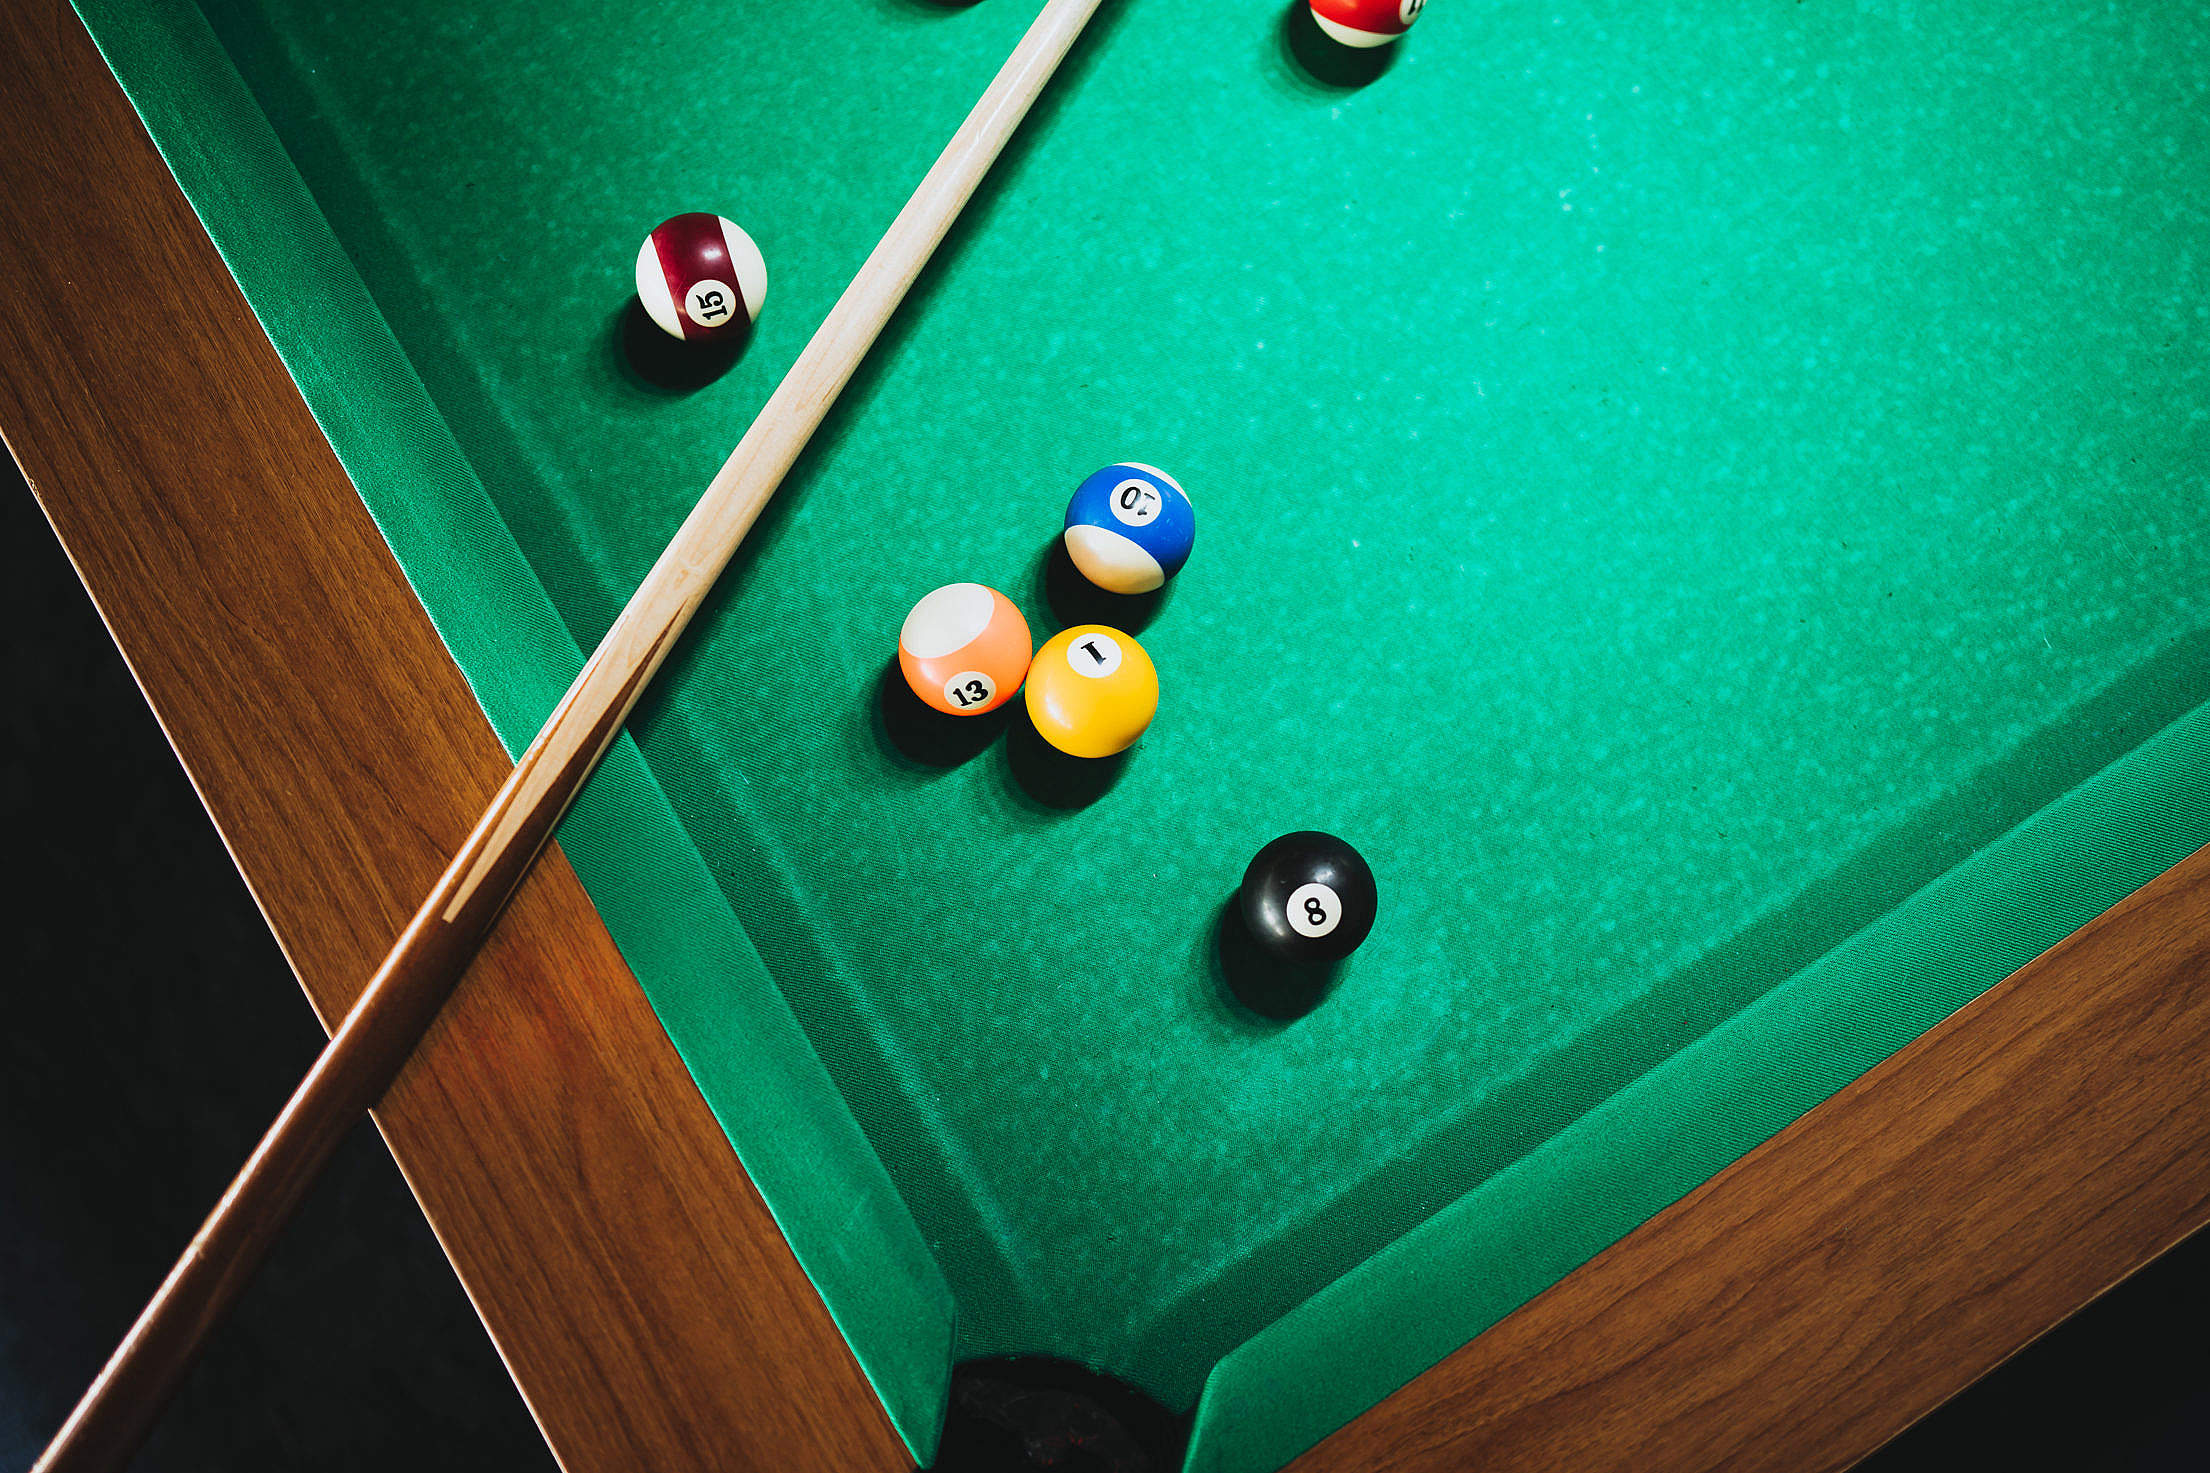 Cue on The Pool Table Free Stock Photo